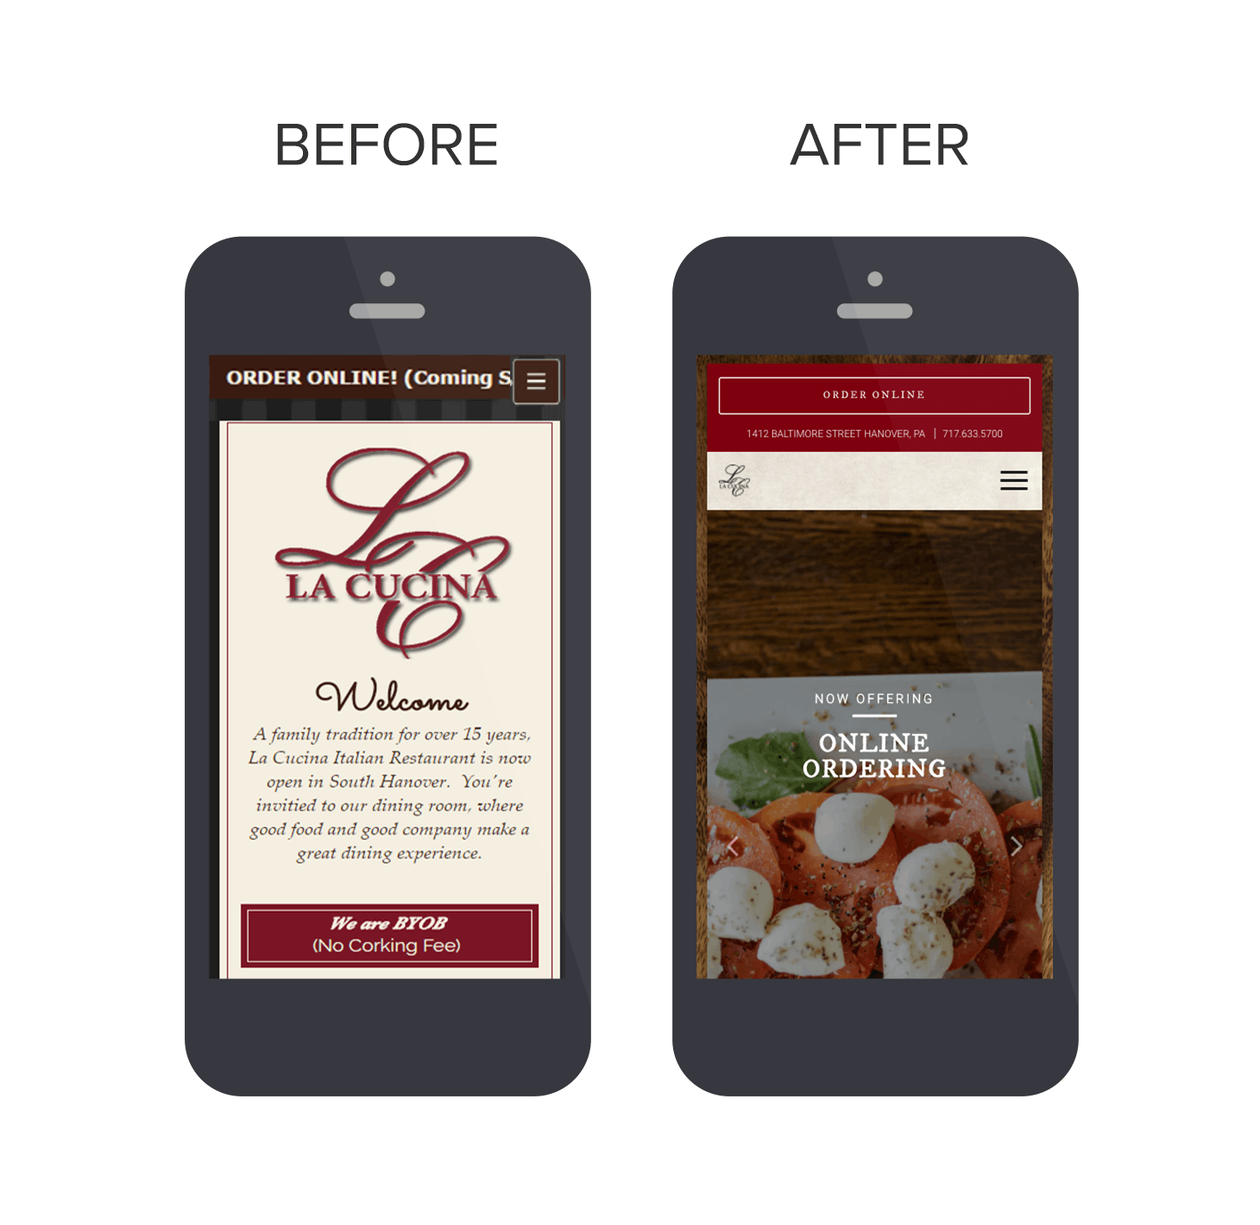 La Cucina website before and after shoots